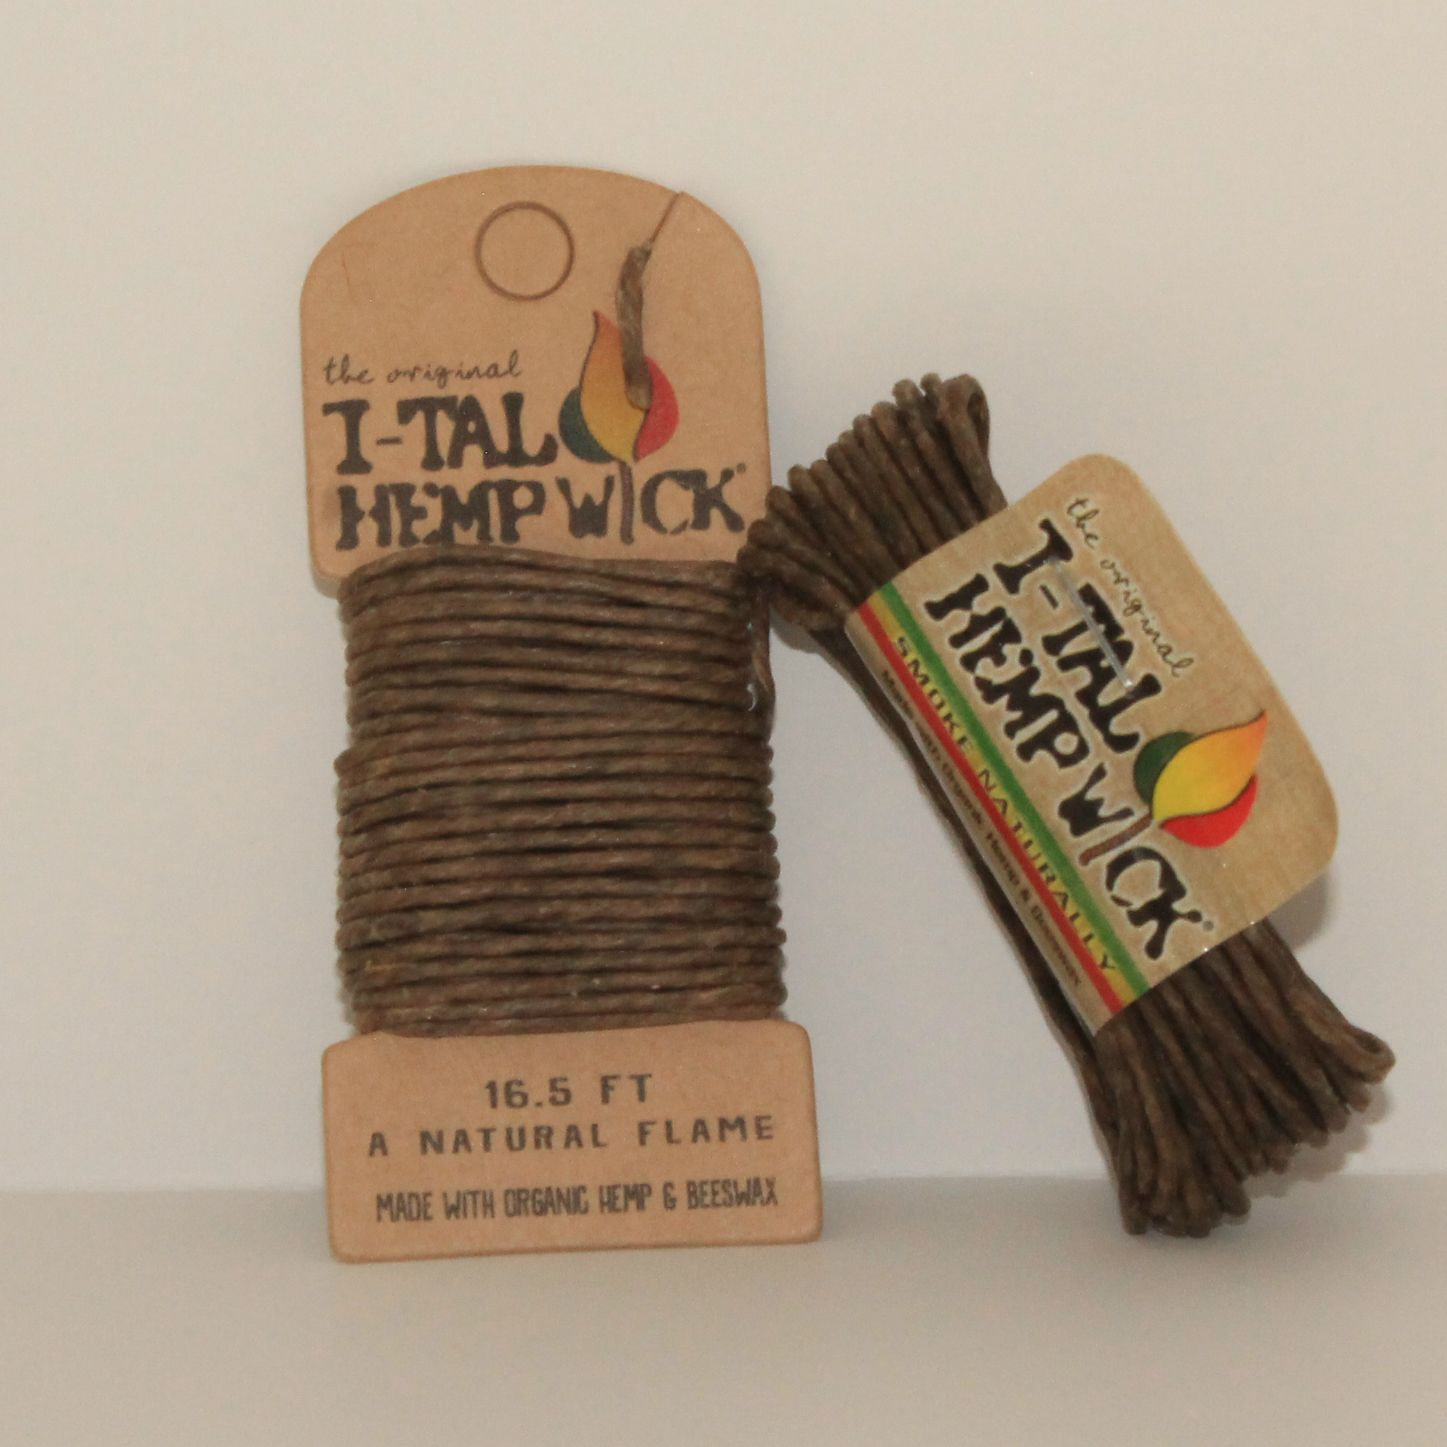 I-Tal Hempwick - Large 16.5ft